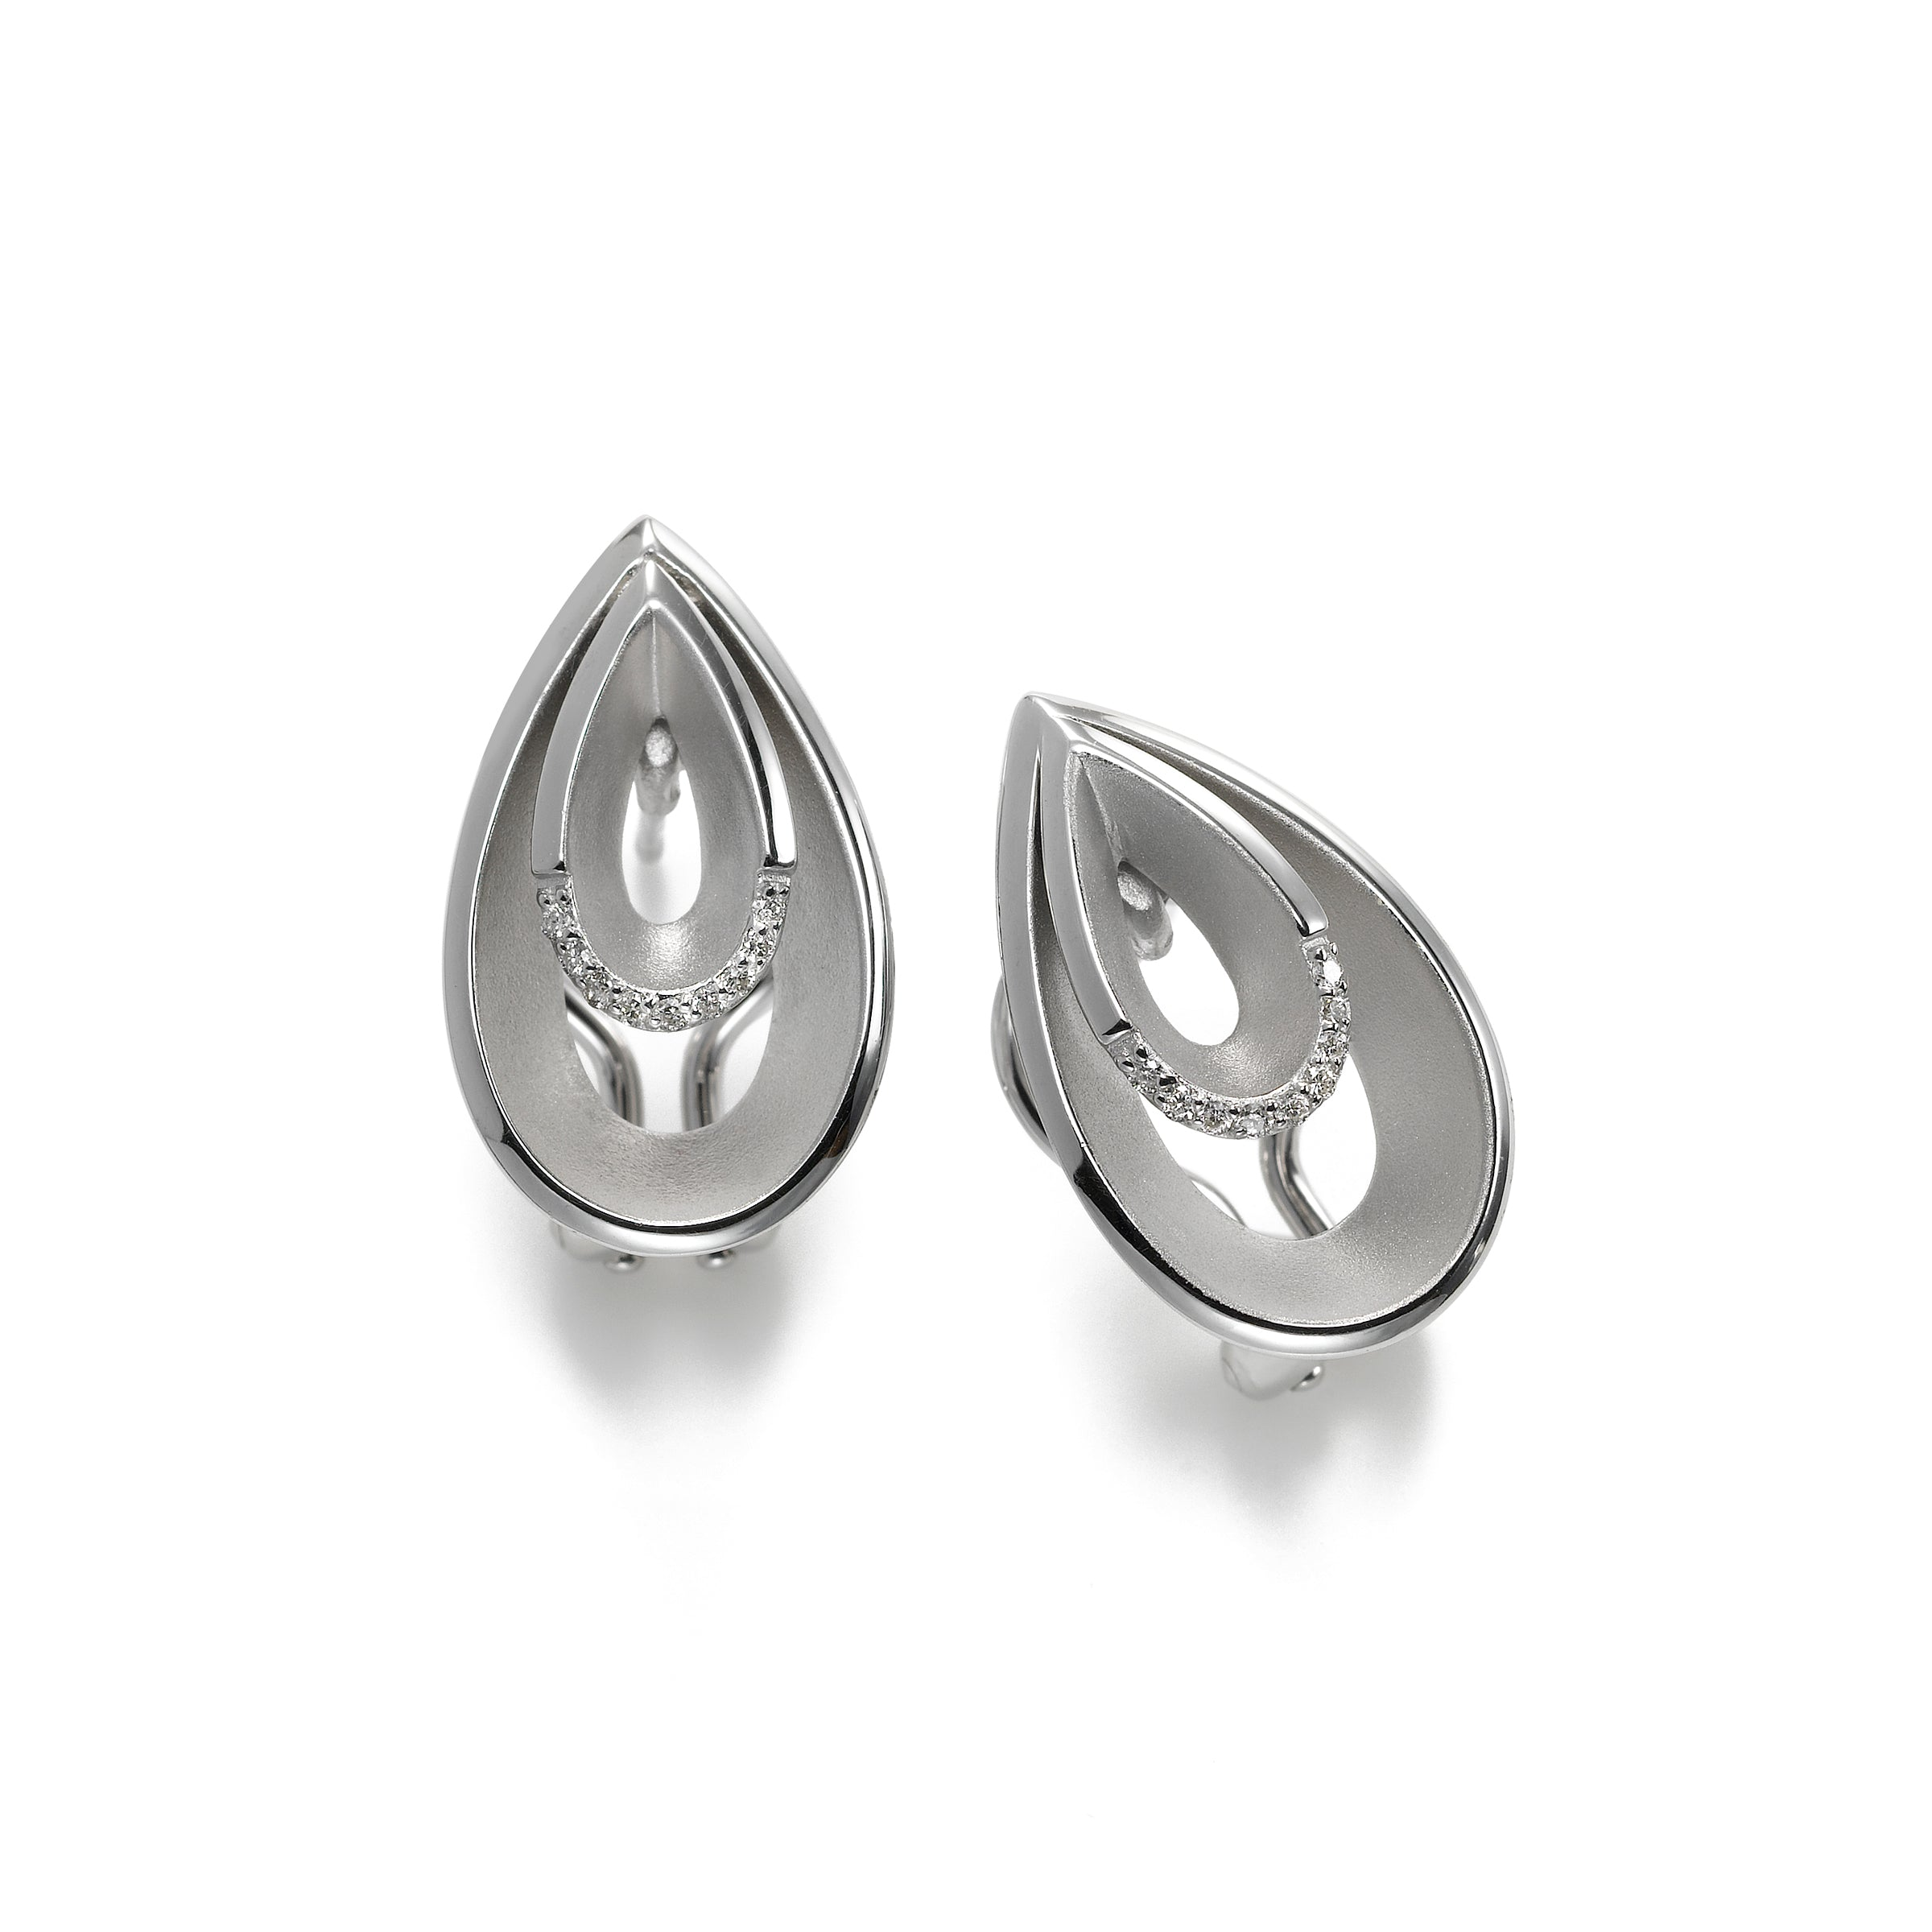 Double Pearshape Earrings with White Topaz Accent, Sterling Silver